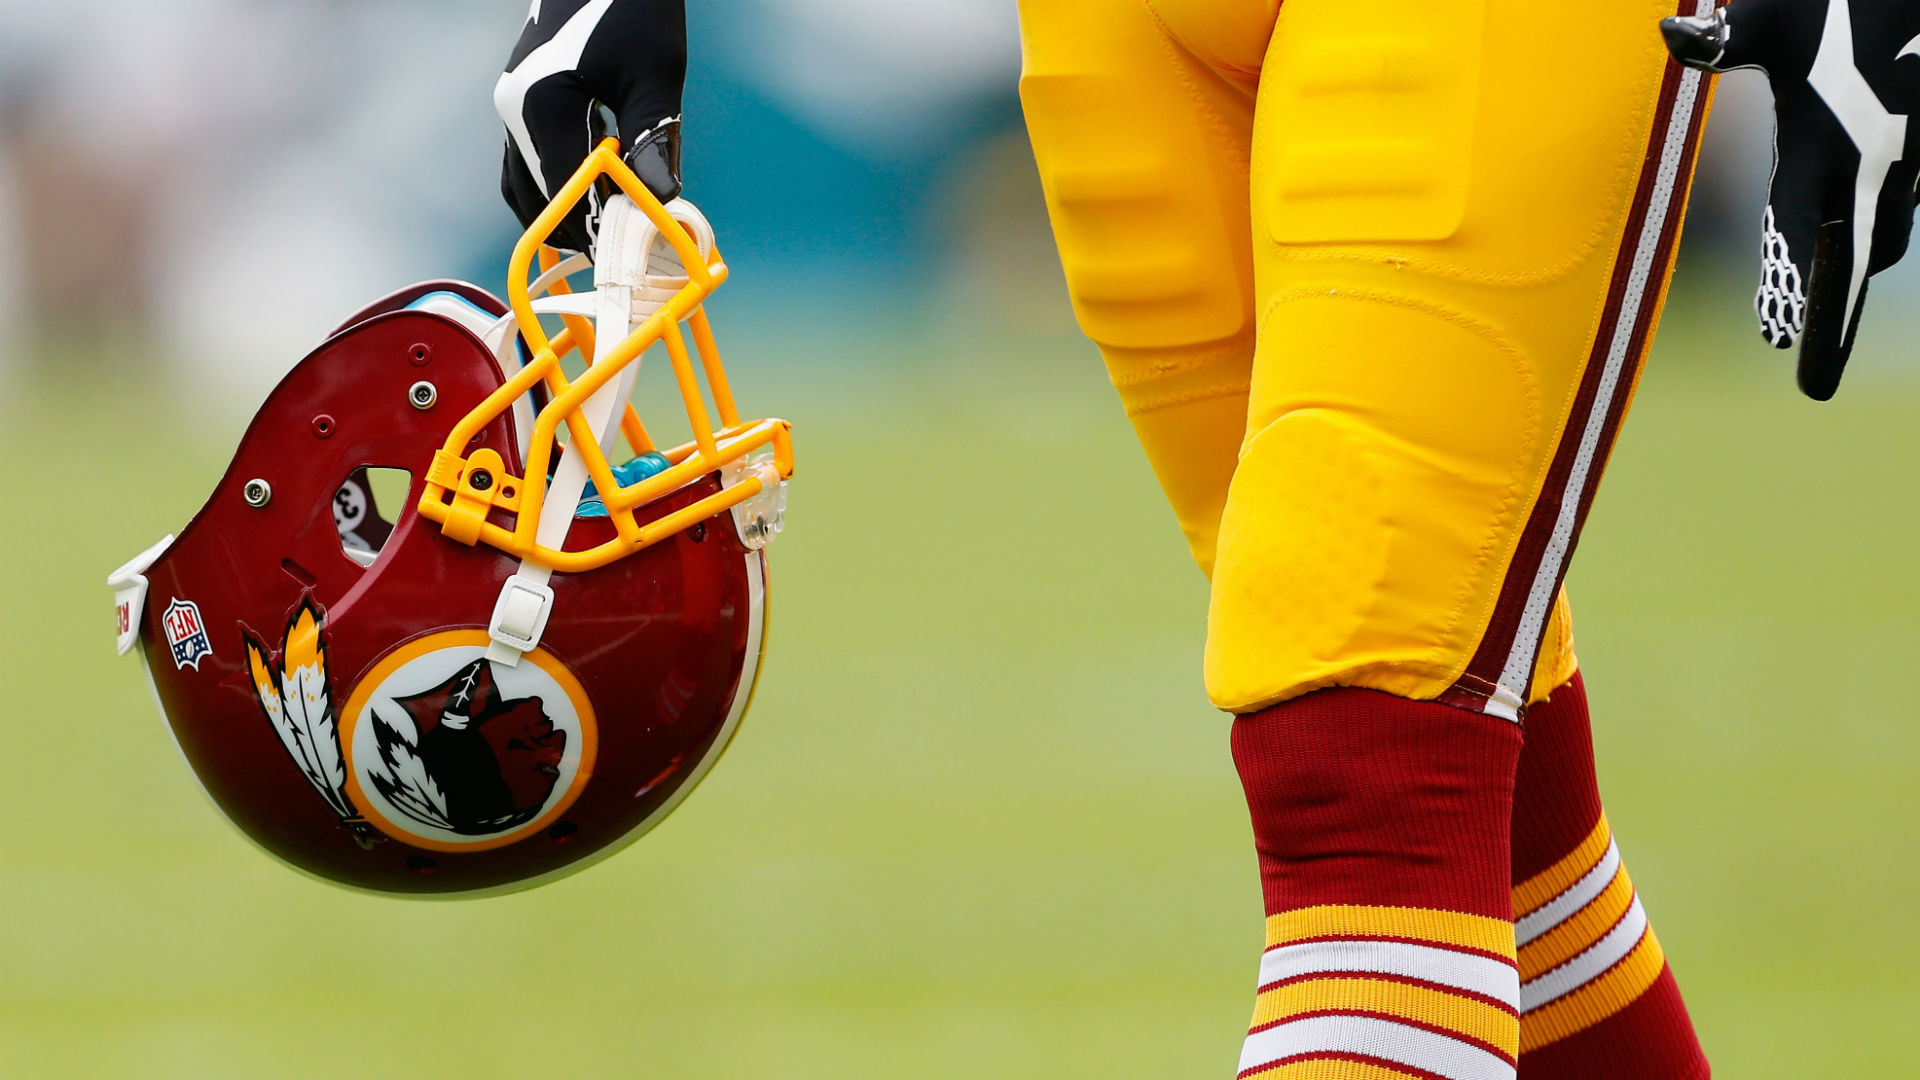 If the Washington Redskins change their team name, here are 5 replacement options 1